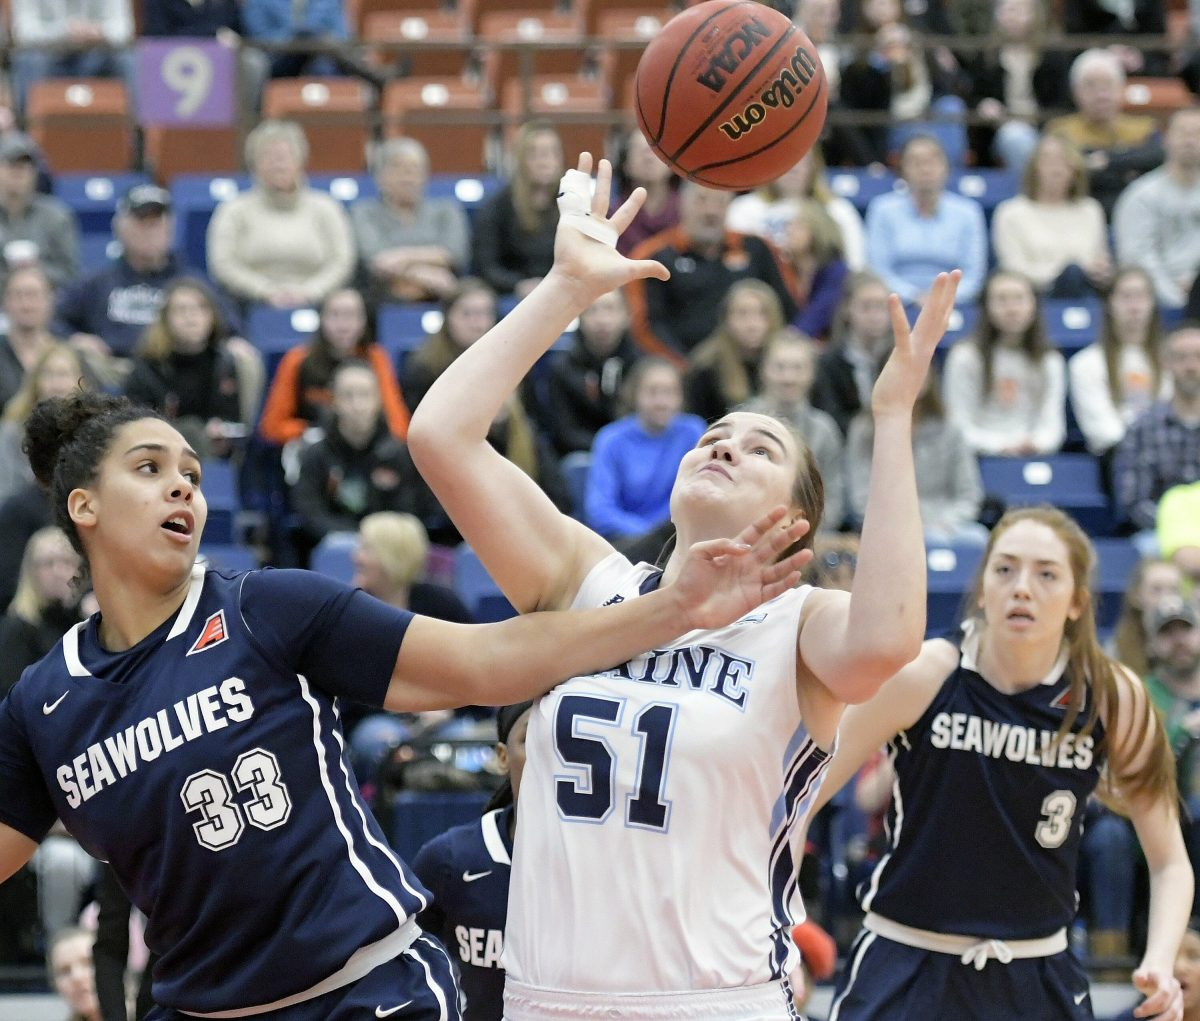 Fanny Wadling has averaged 8.9 rebounds this season in 21 games for the University of Maine. She also has 20 blocks, 31 steals and 41 assists, showing her all-around value for the Black Bears, who are a win away from an NCAA tourney appearance for the second straight year.